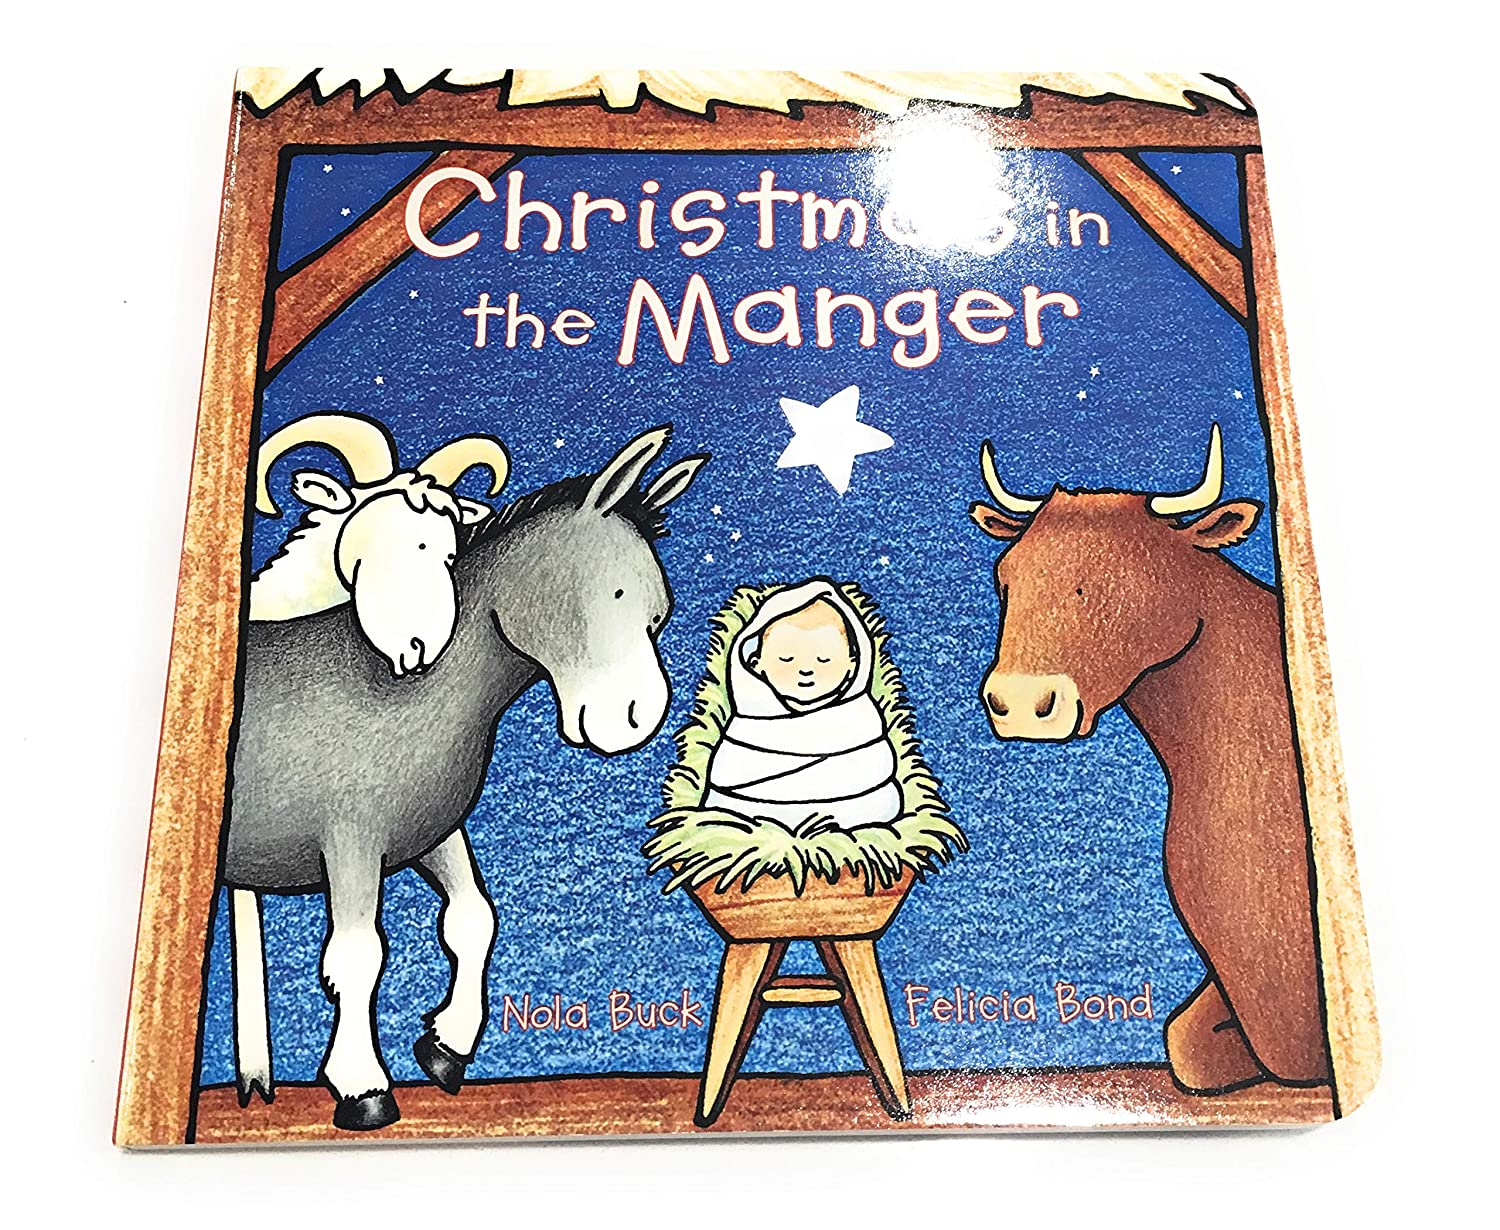 Christmas Toy /& Animals Shepherds Simple Quality Includes Christmas in The Manger Board Book Figures Include Mary Joseph Baby Jesus Wise Men Nativity Playset for Children 19 Pieces by BibleToys Bundle